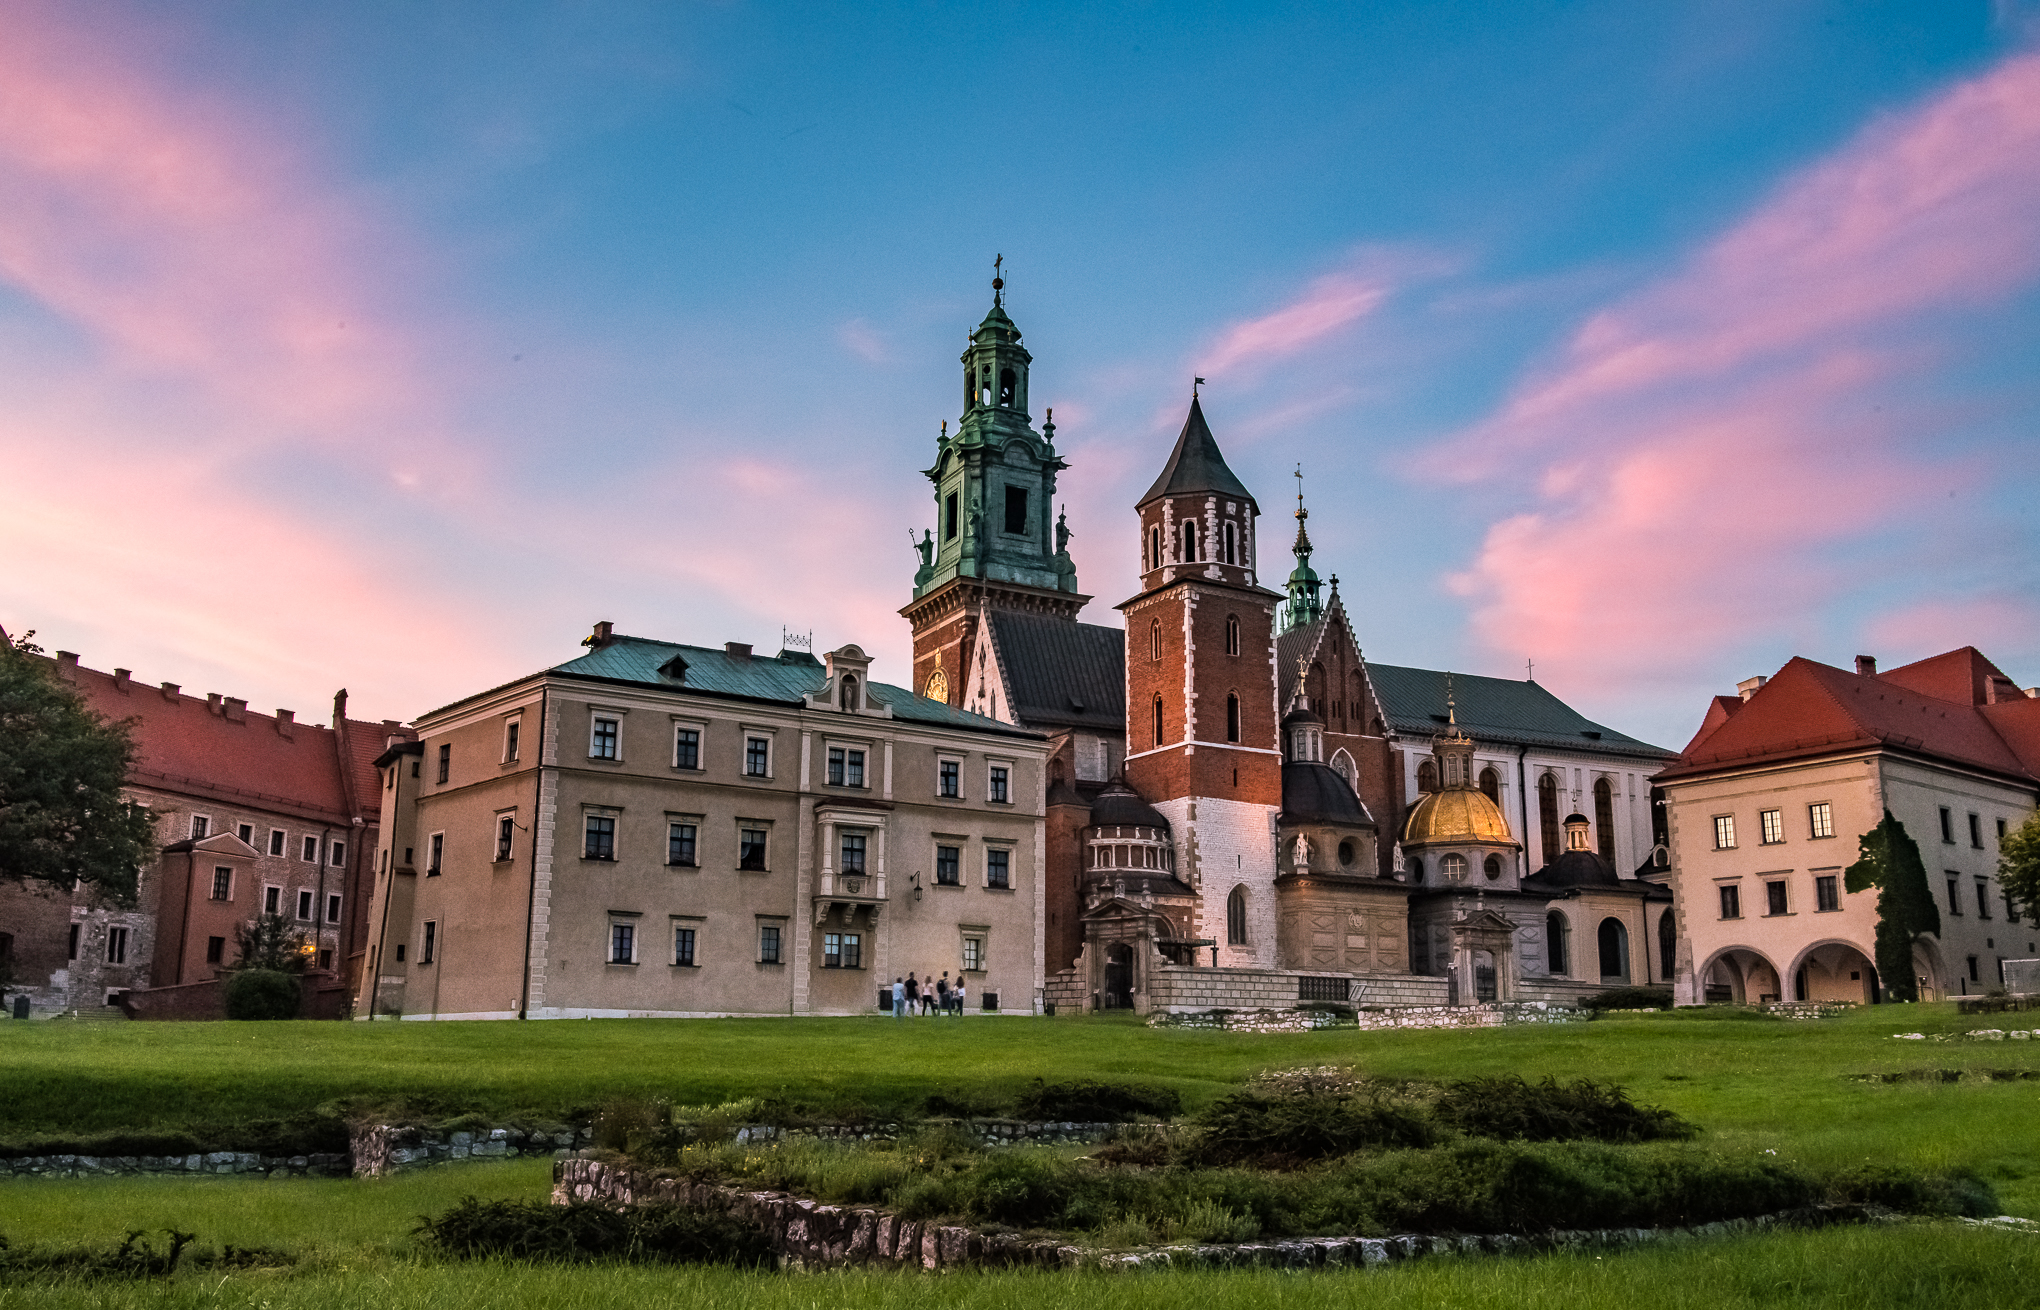 Wawel Castle at sunset. Taken from in front of Trattoria Wawel - long exposure using an ND filter.